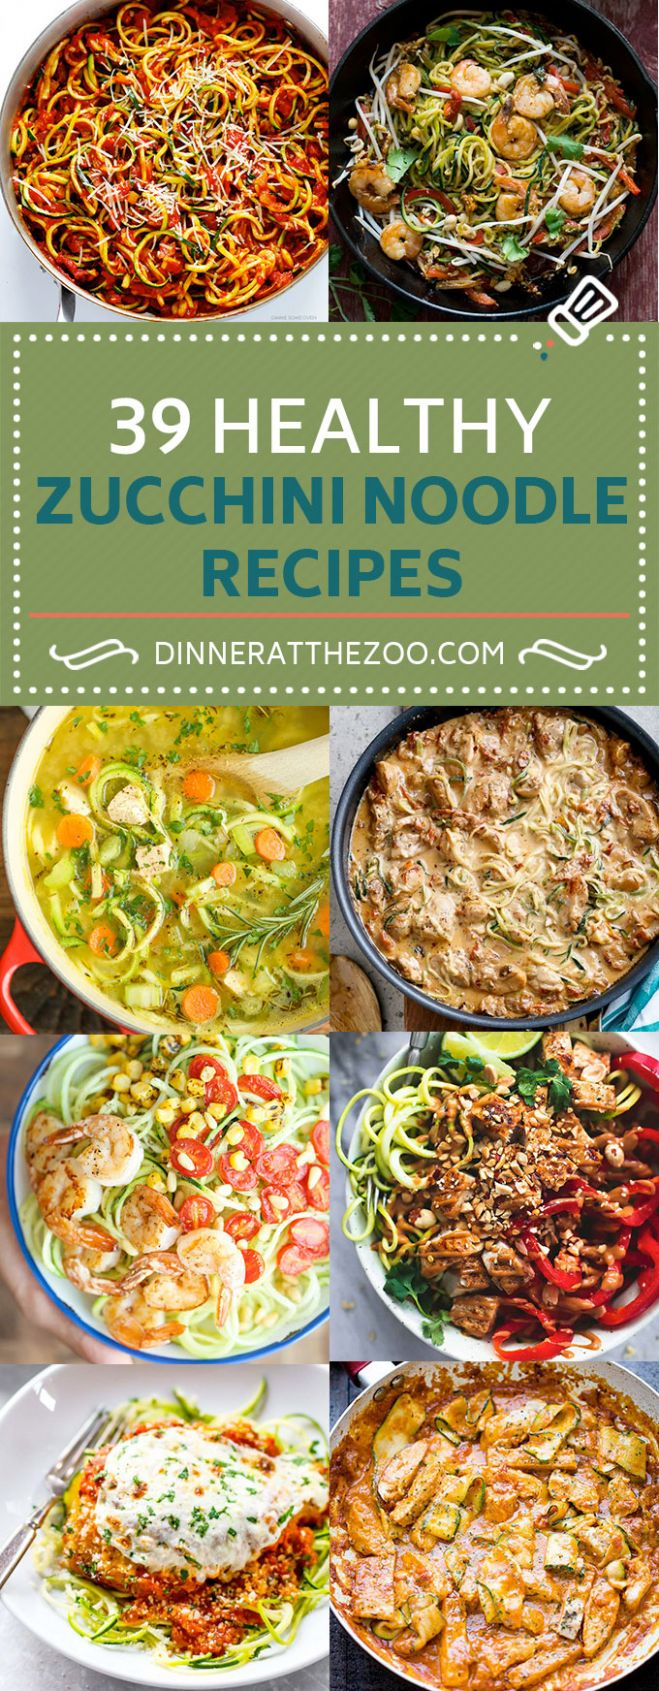 8 Healthy Zoodle (Zucchini Noodle) Recipes - Dinner at the Zoo - Healthy Zoodle Recipes For Weight Loss